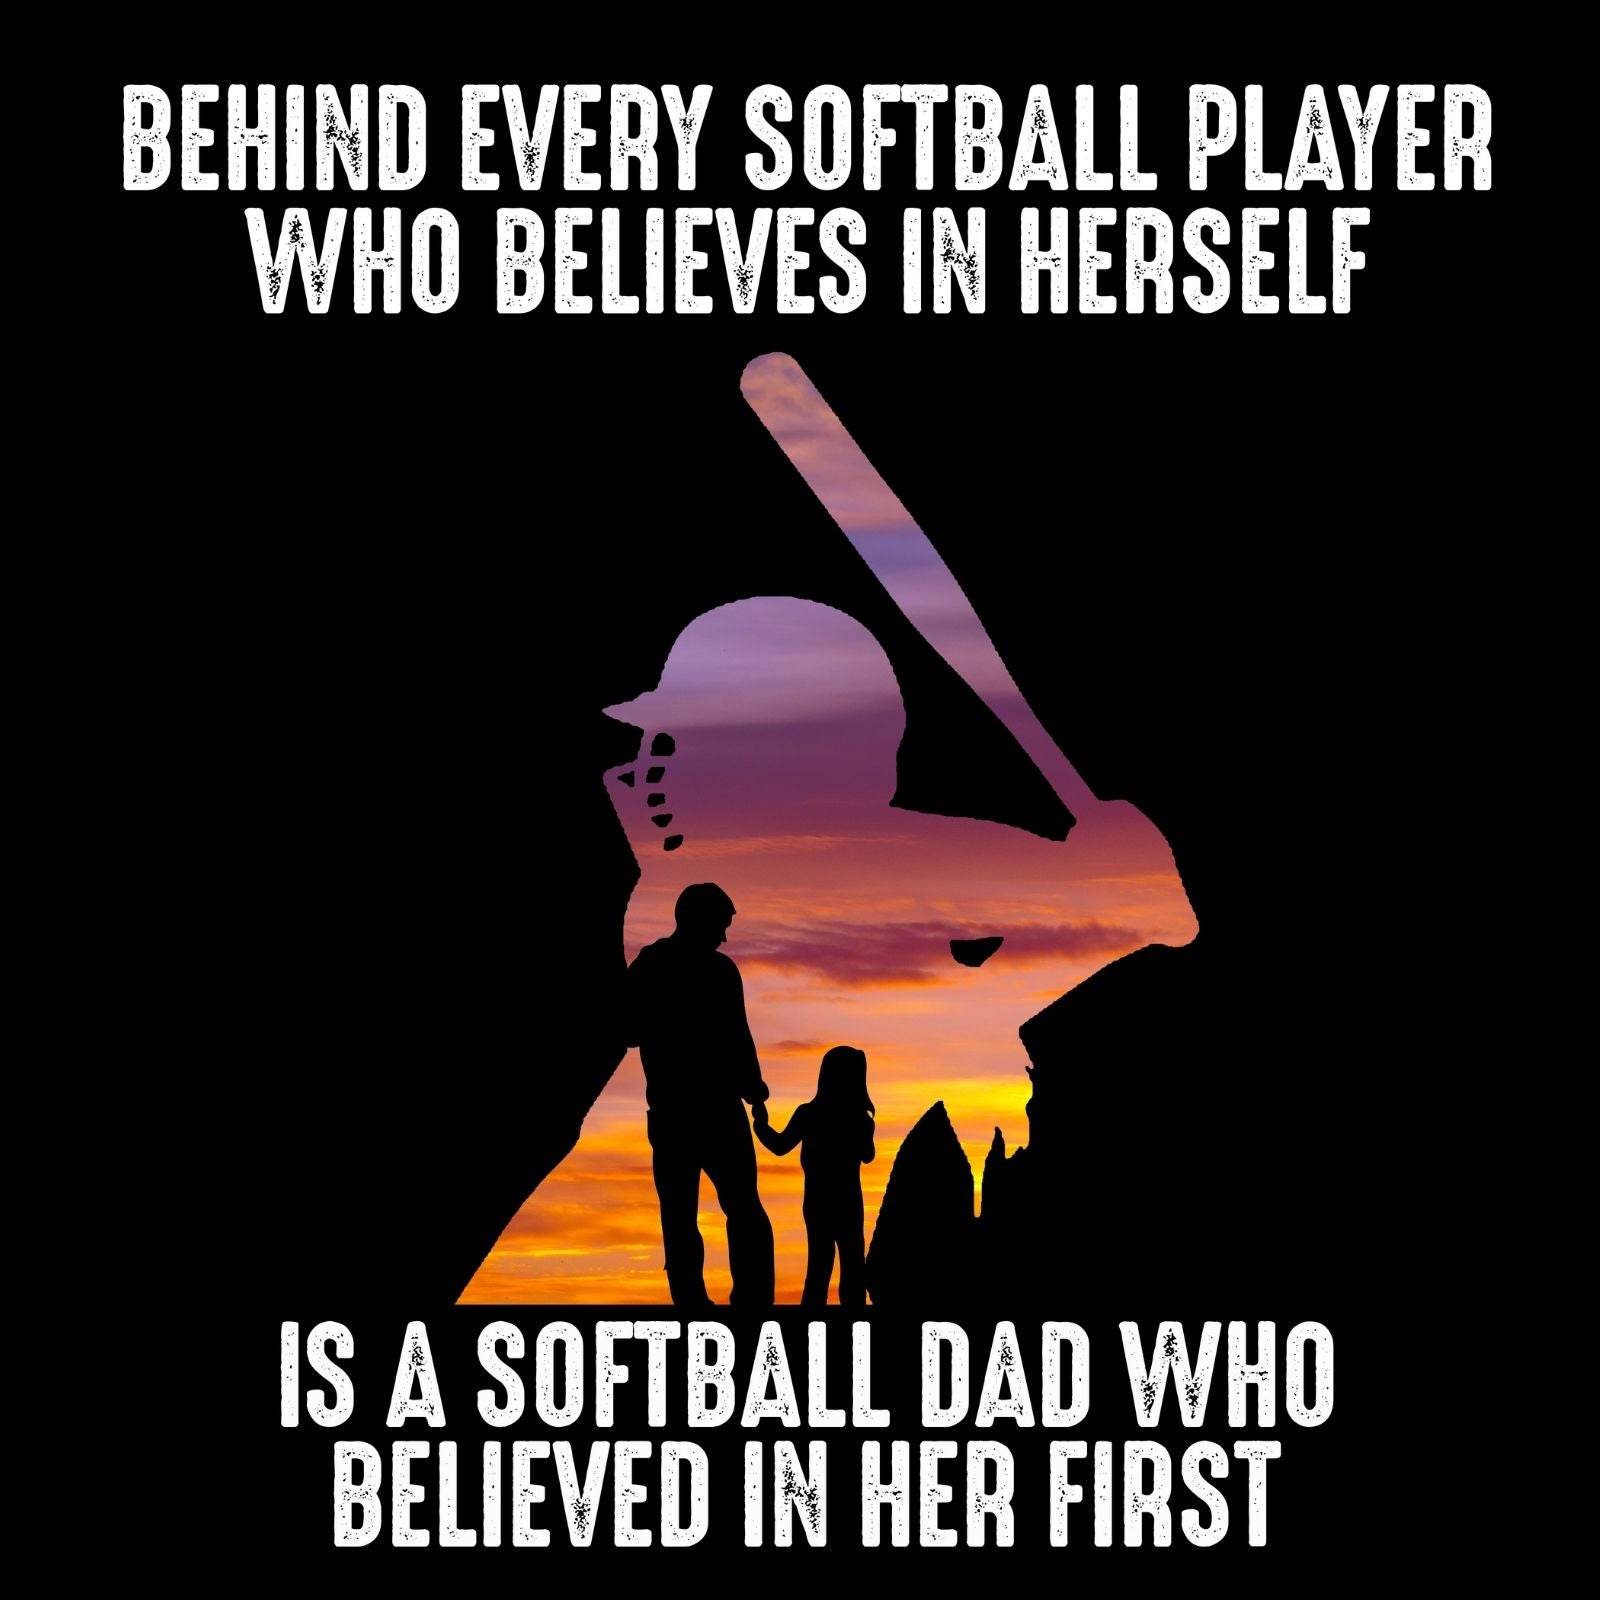 Behind Every Softball Player Who Believes In Herself Is A Softball Player Dad Who Believed In Her First - Bastard Graphics